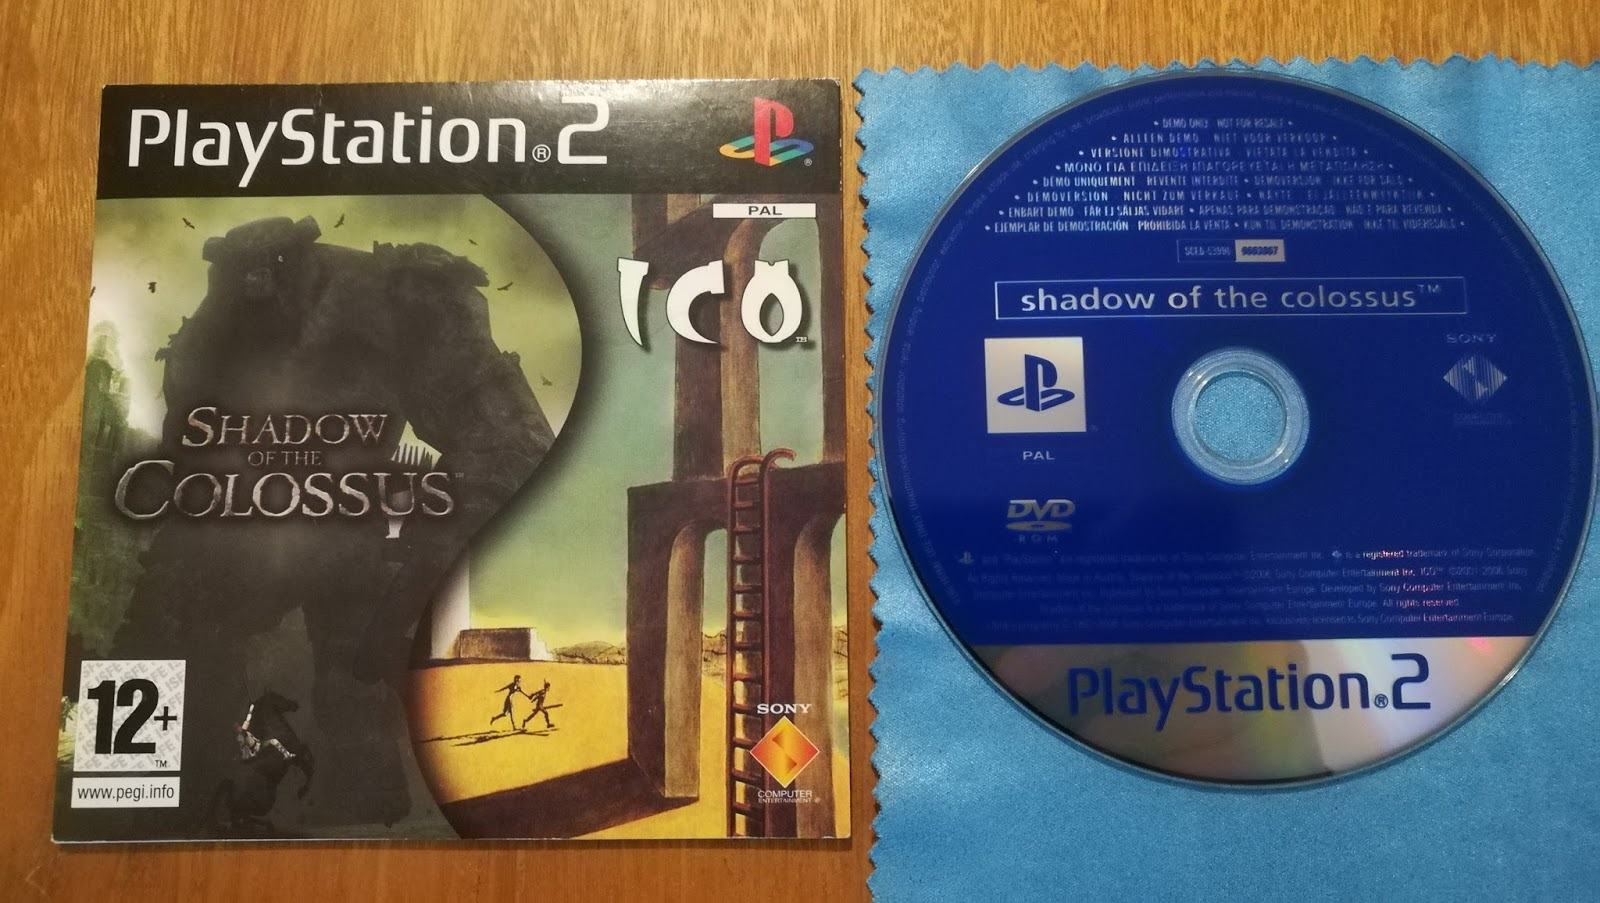 Shadow of Colossus / ICO Demo - Video Game Preservation